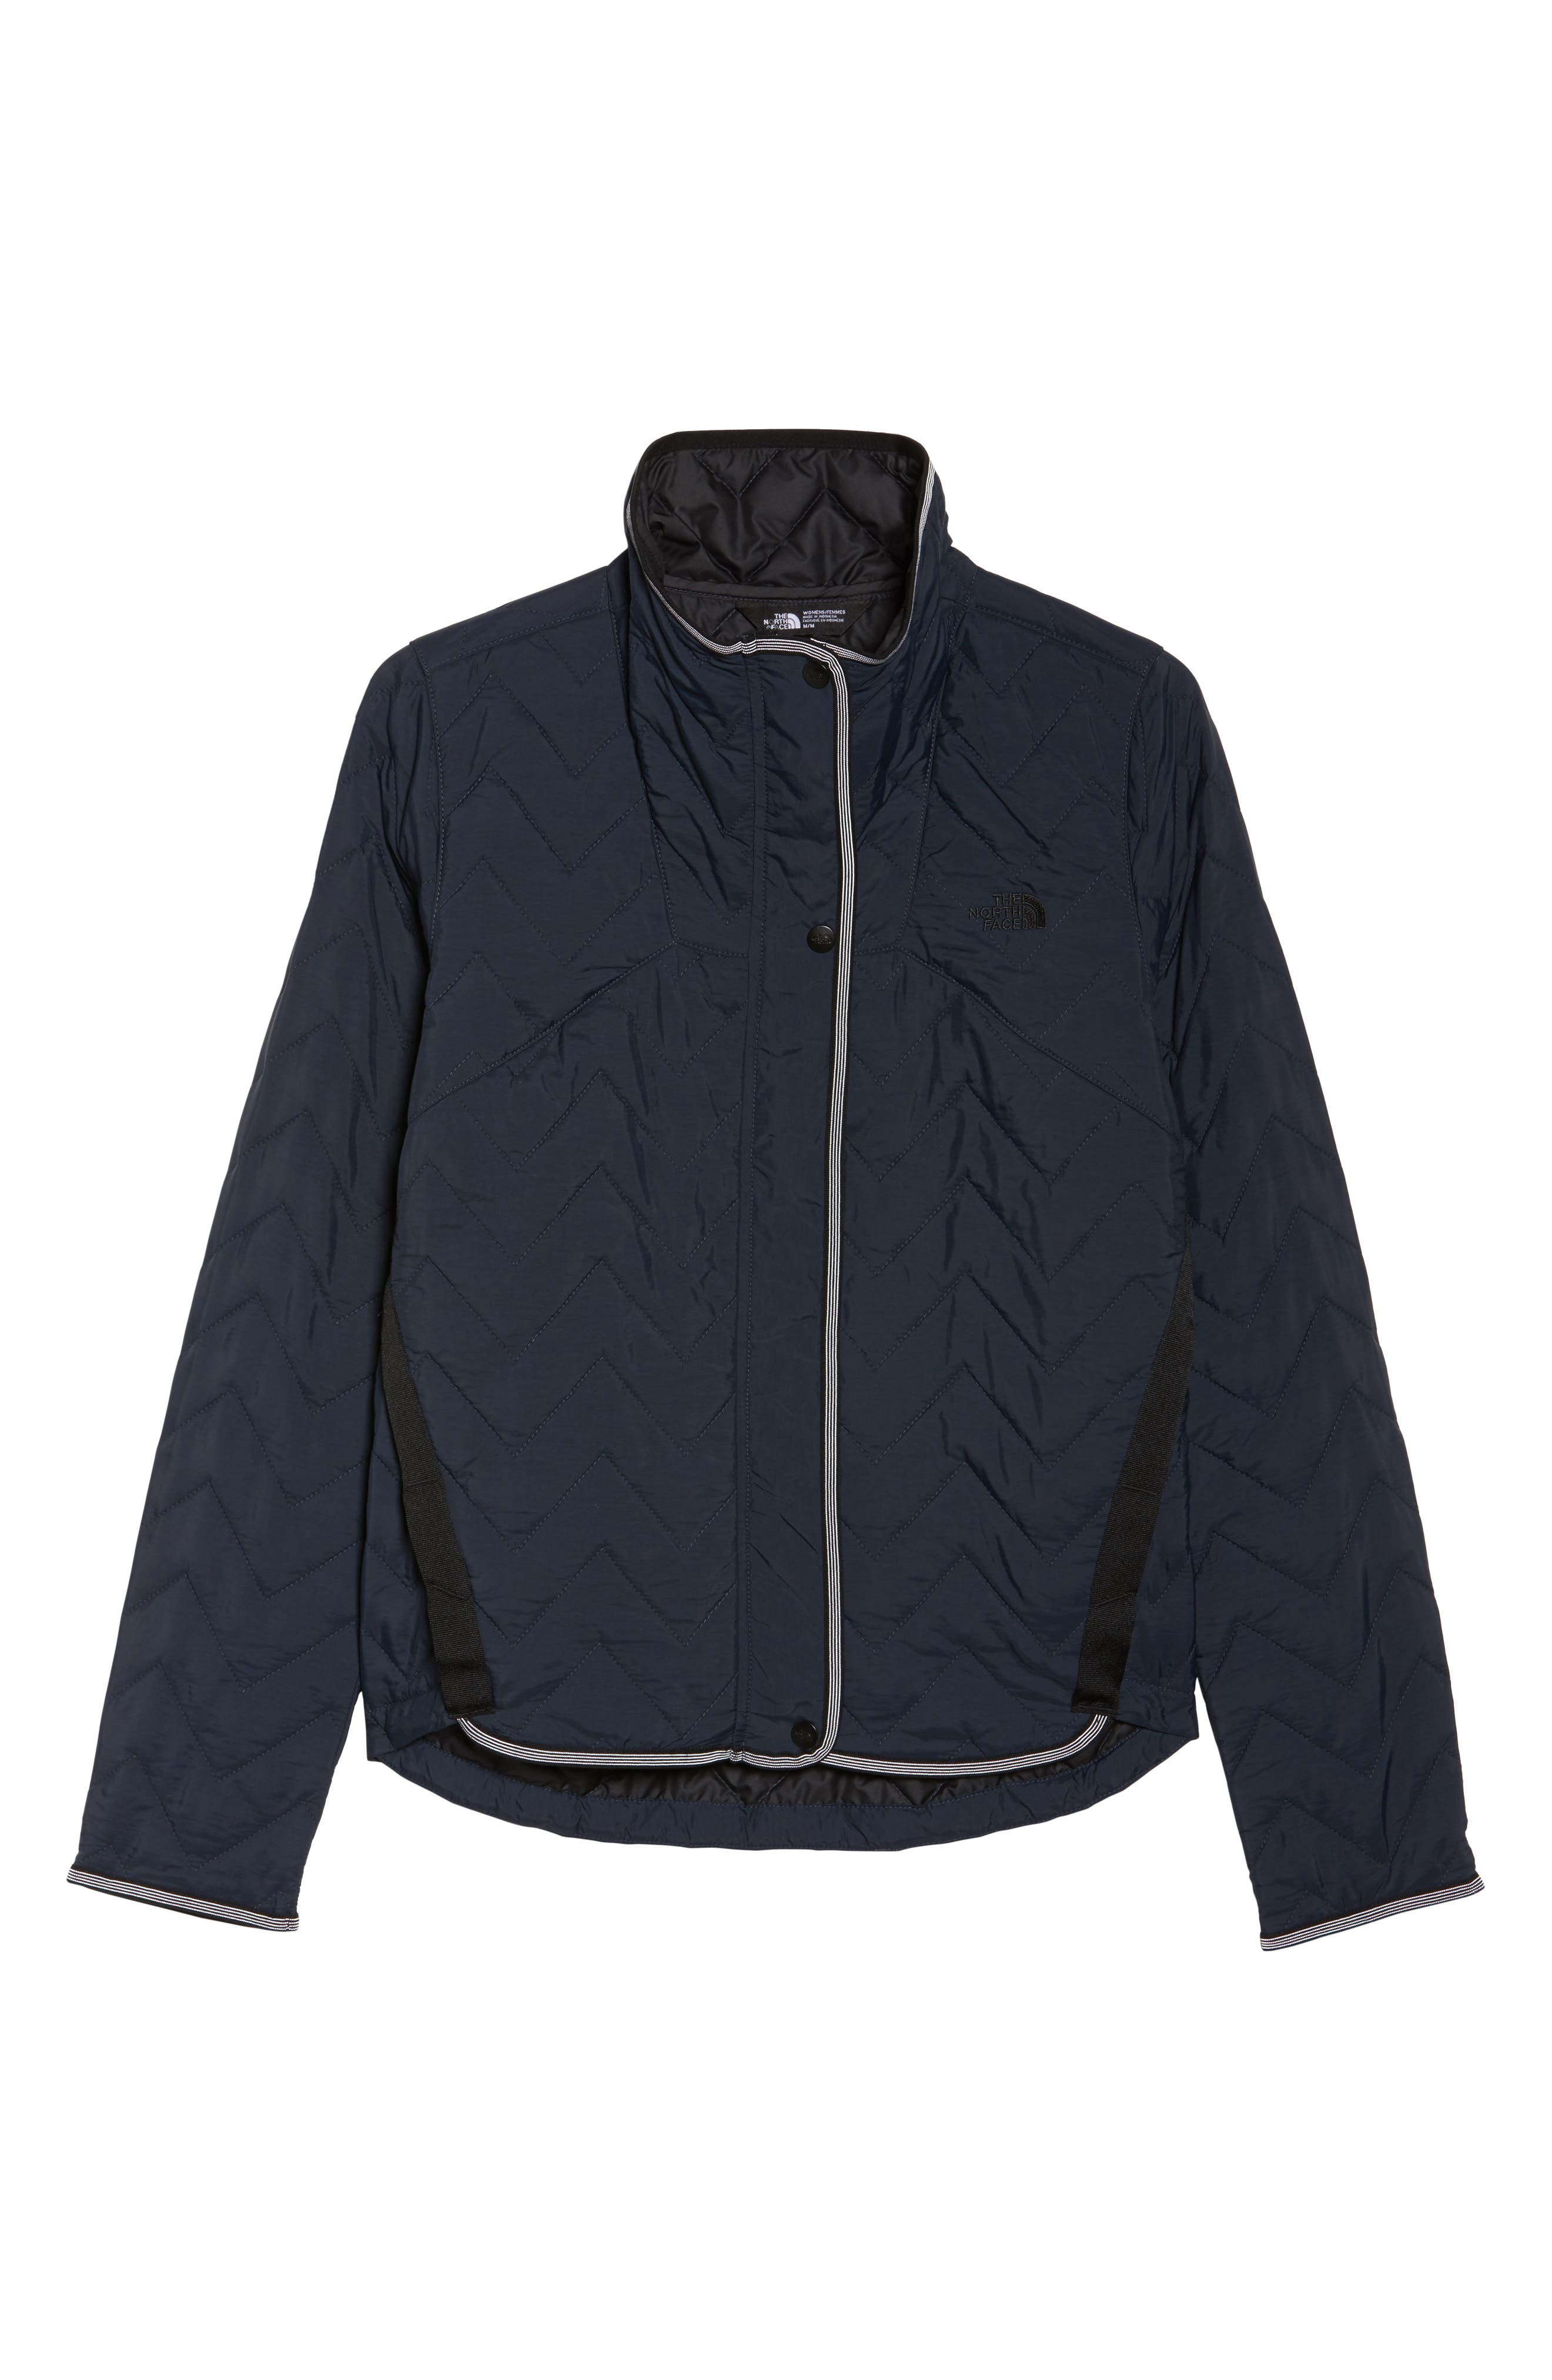 Westborough Insulated Jacket,                             Alternate thumbnail 7, color,                             Urban Navy